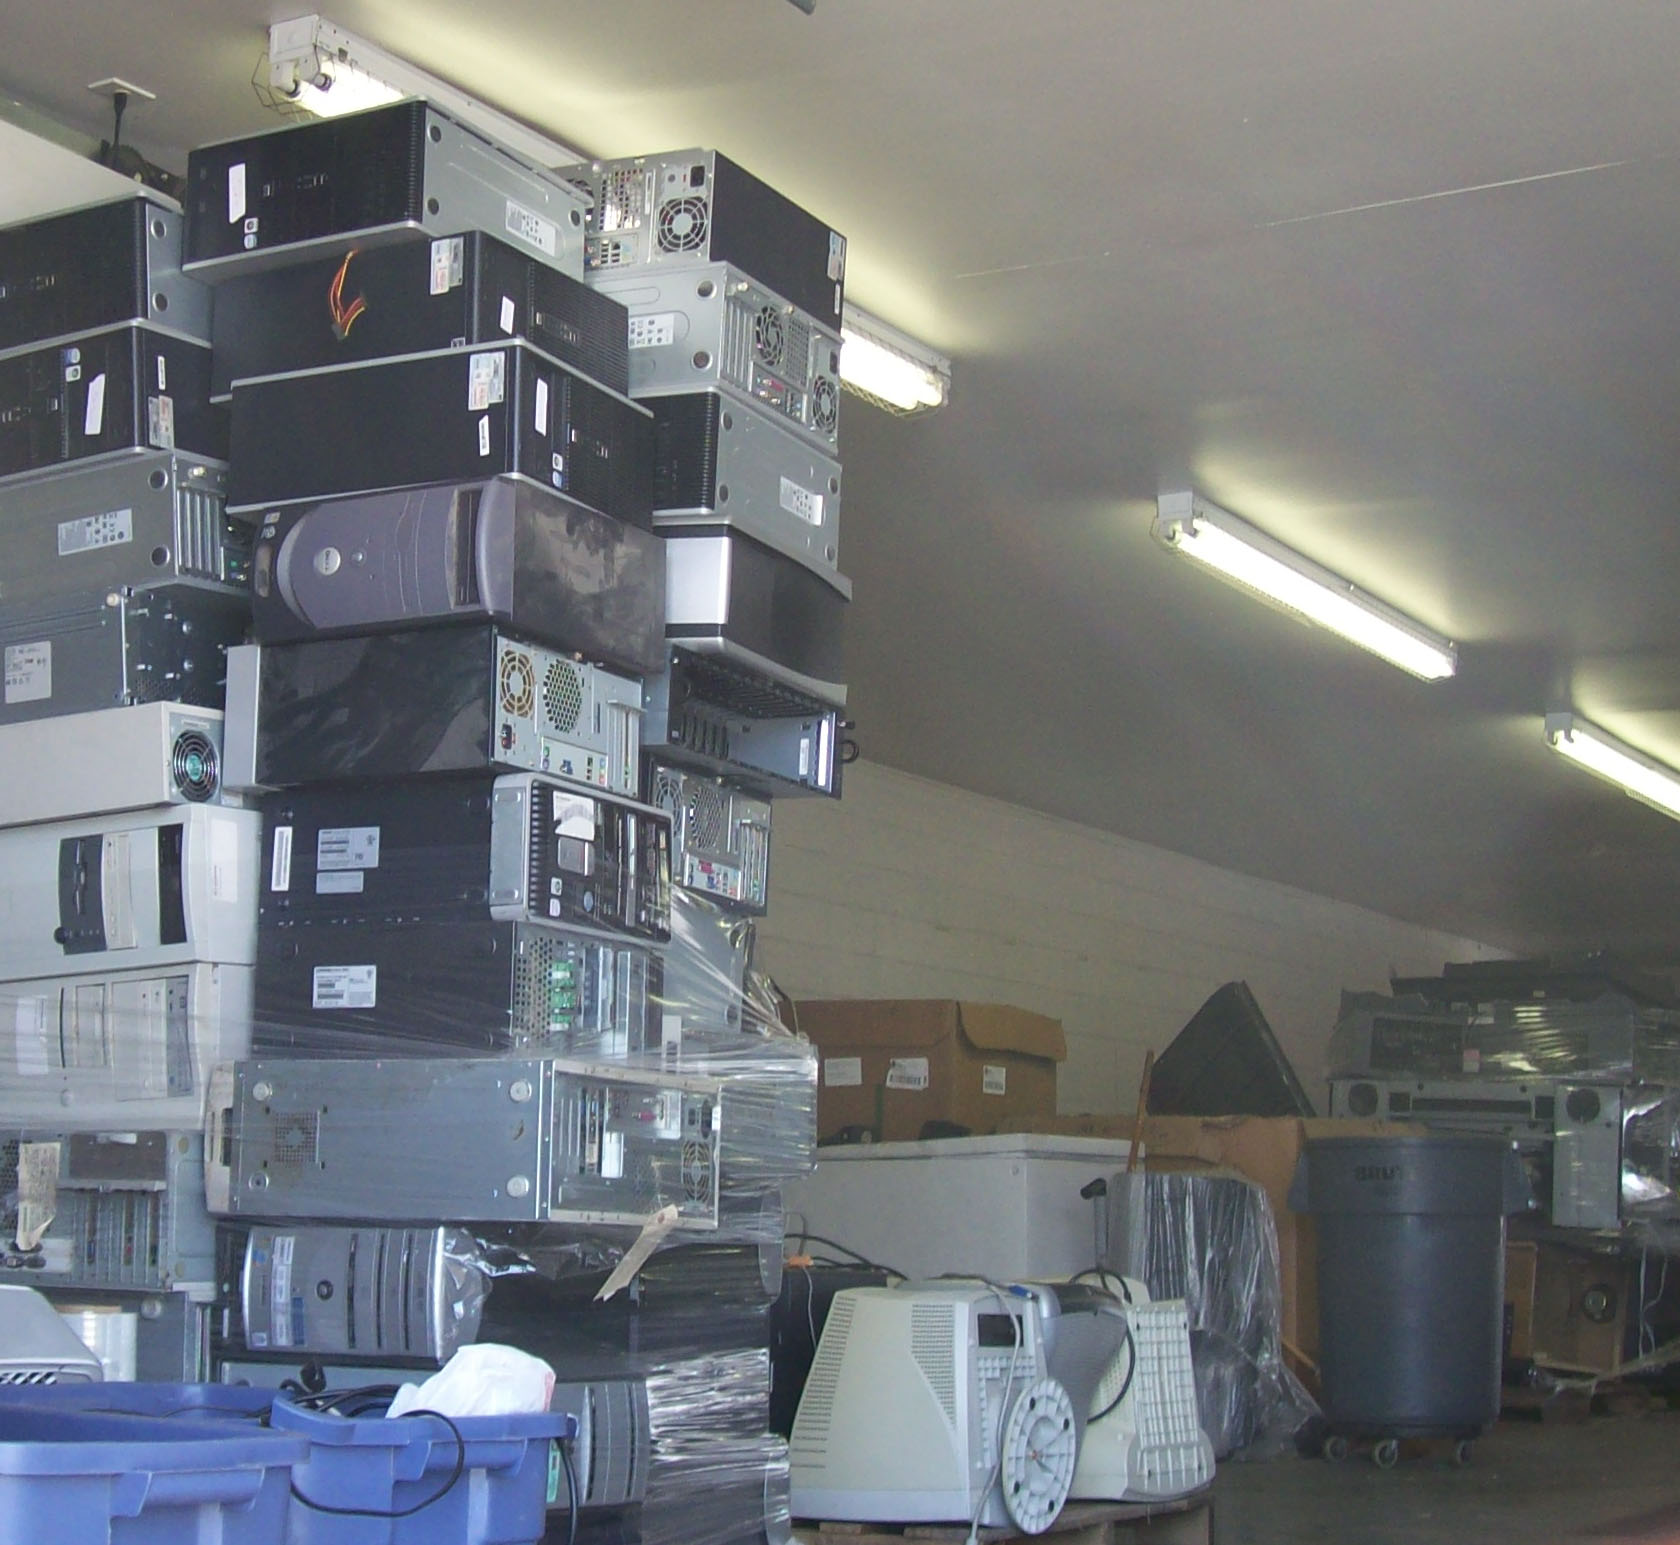 Electronic Recycling includes appliance, computers, TVs, and most other items with a cord.